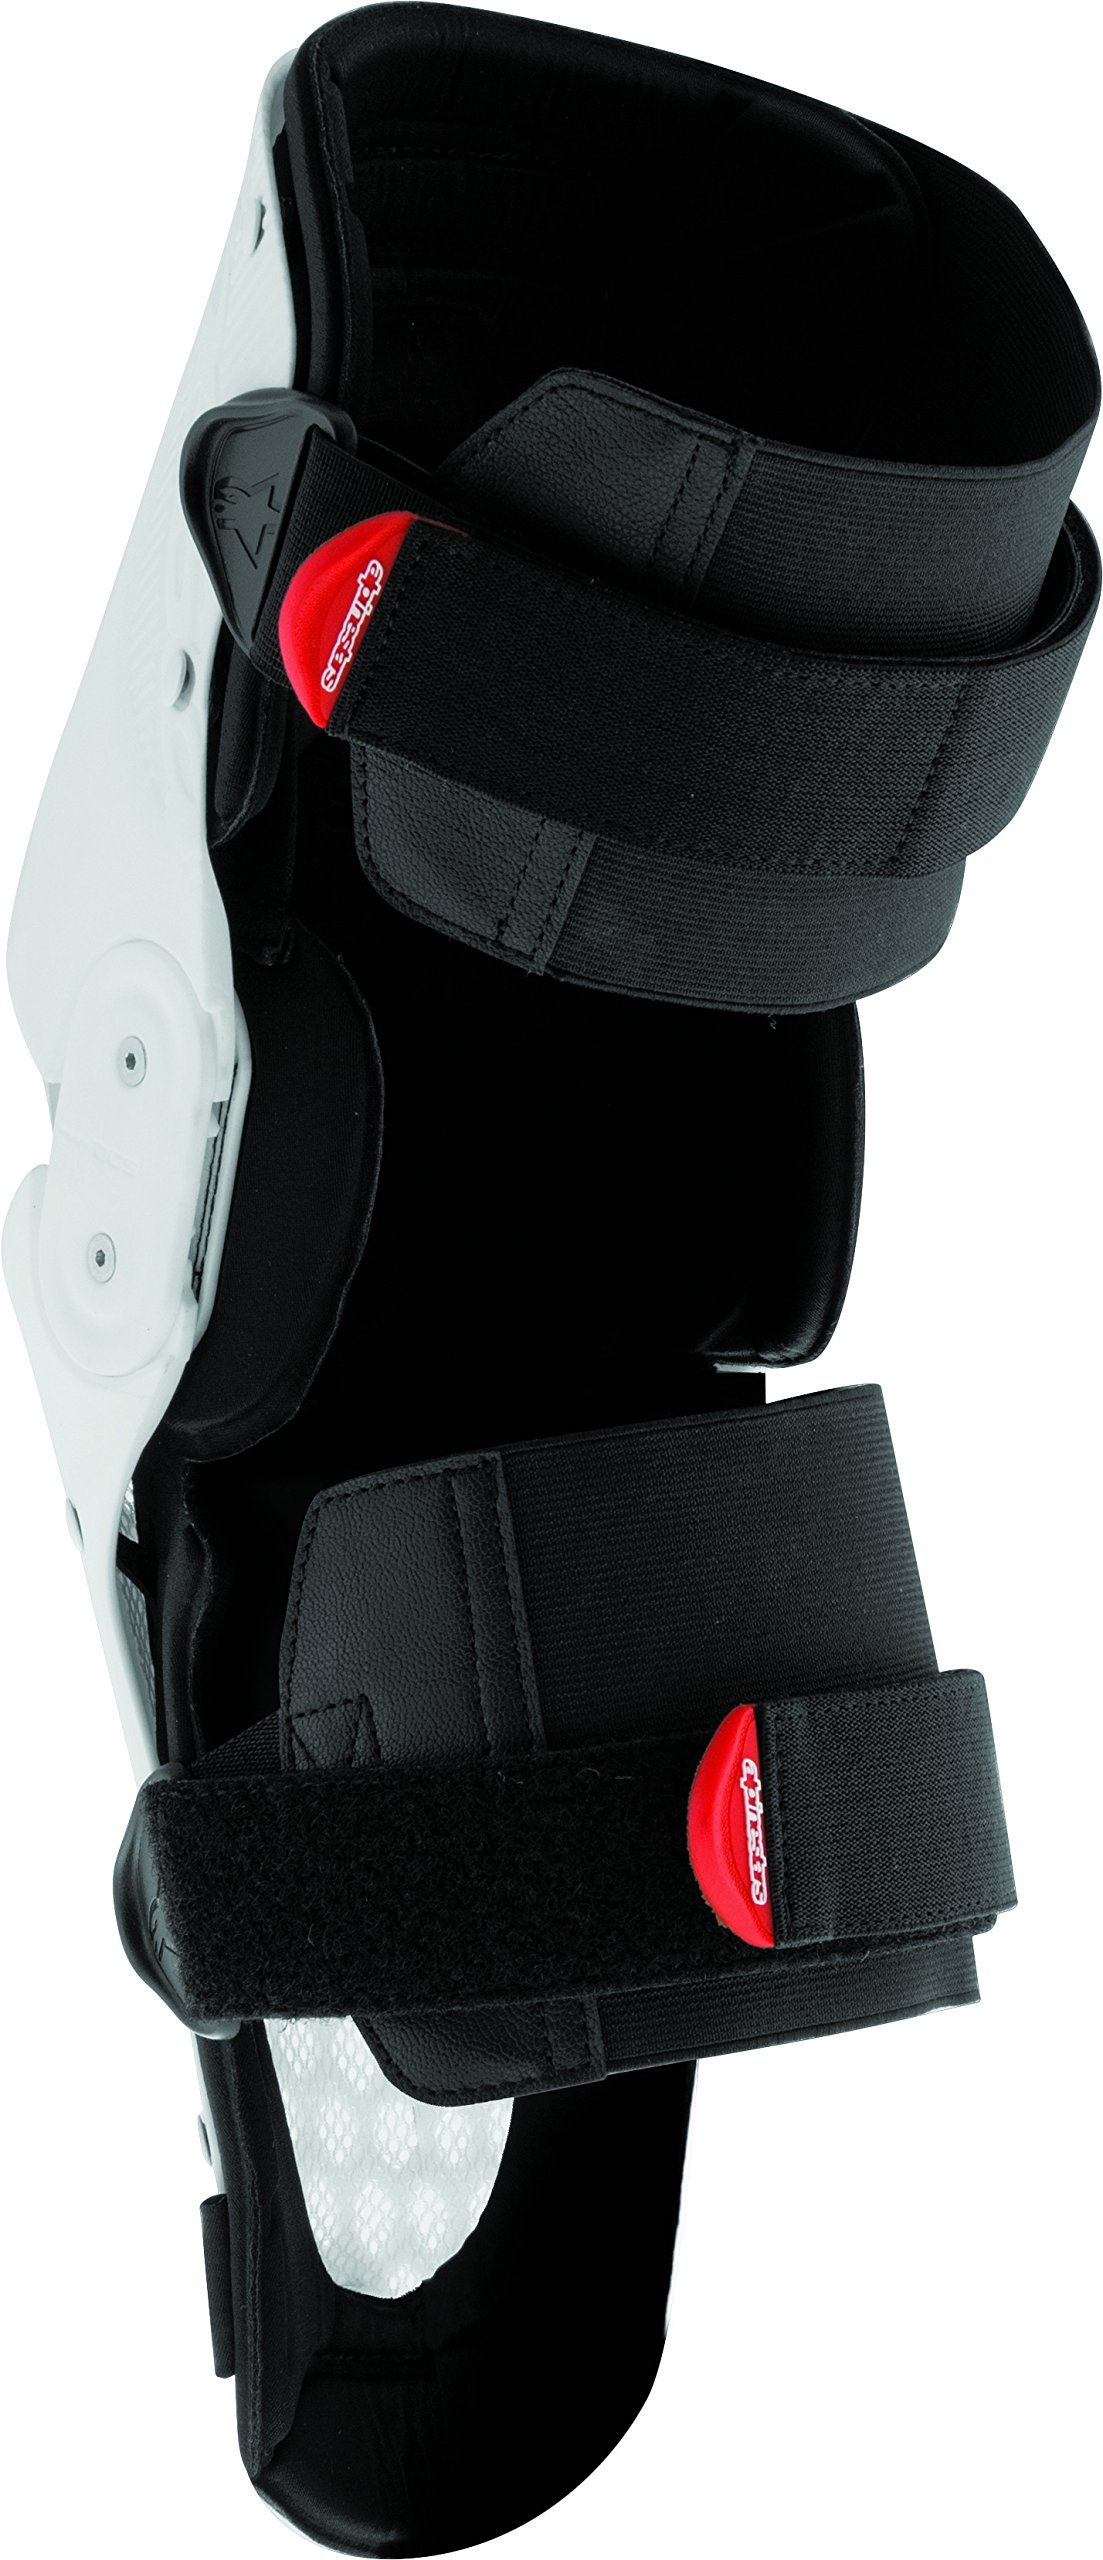 Alpinestars SX-1 Men's Knee Guard Off-Road Body Armor - White/Black/Small/Medium